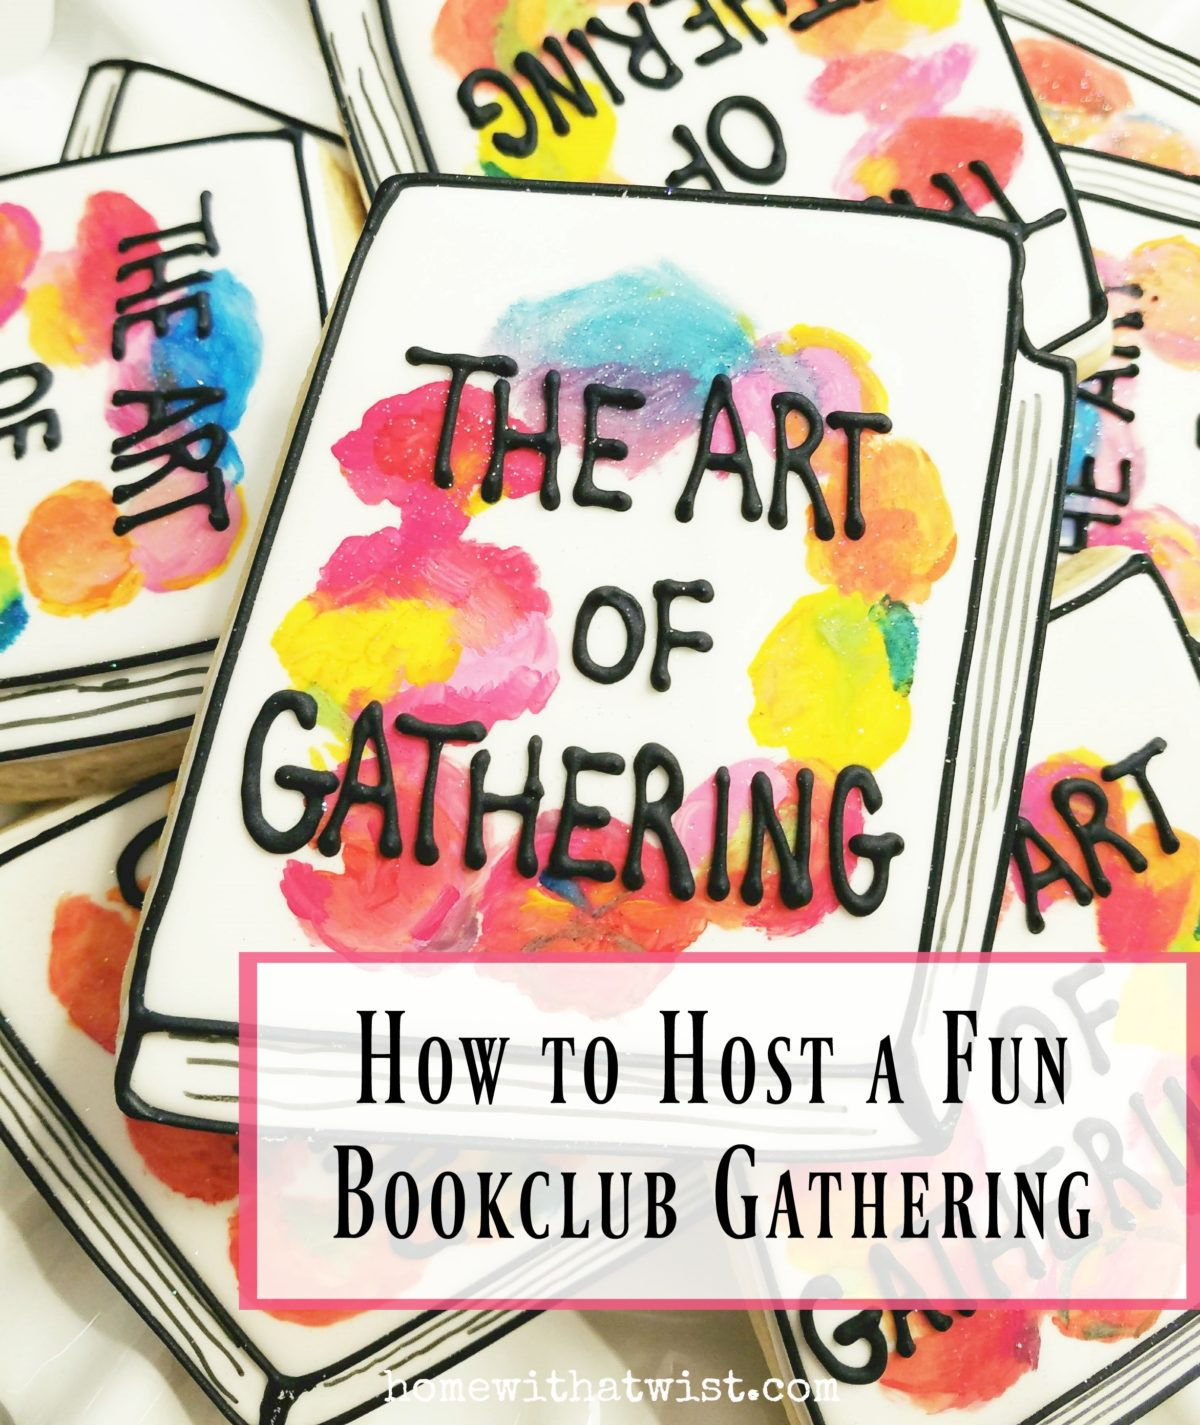 Art of Gathering Book Club Party!